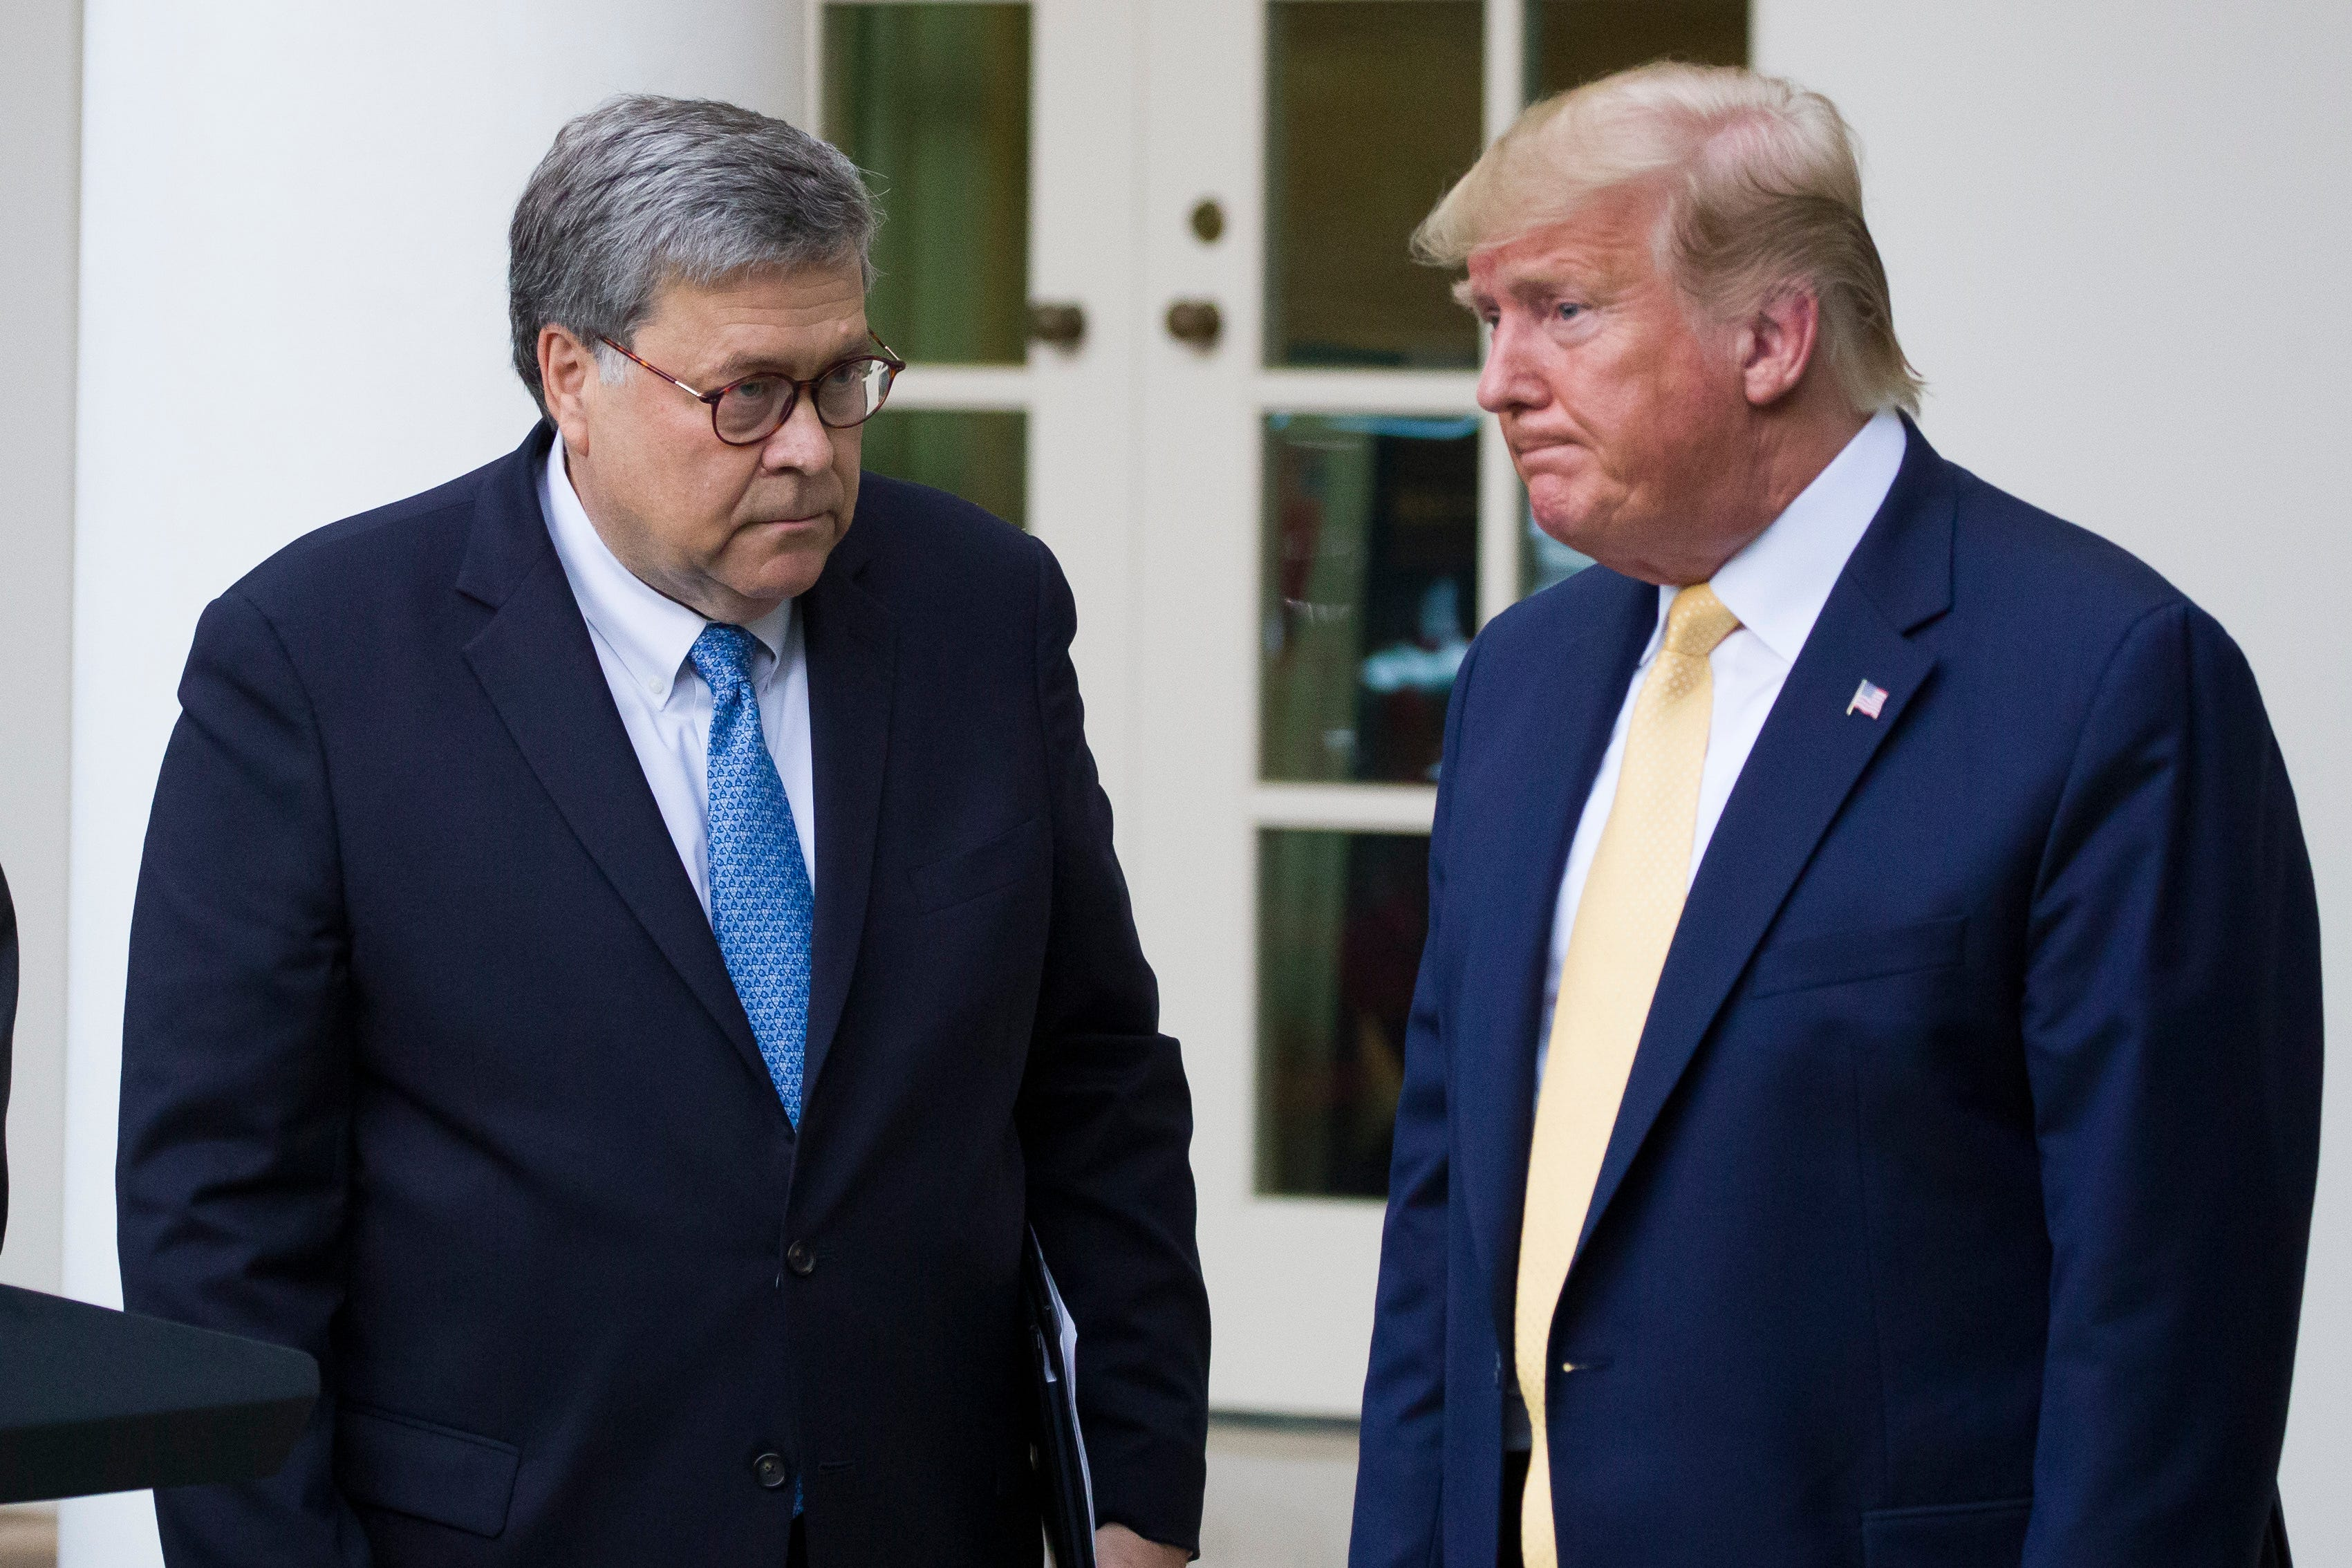 Federal lawyers are accountable to ethics and the public, not Donald Trump and Bill Barr